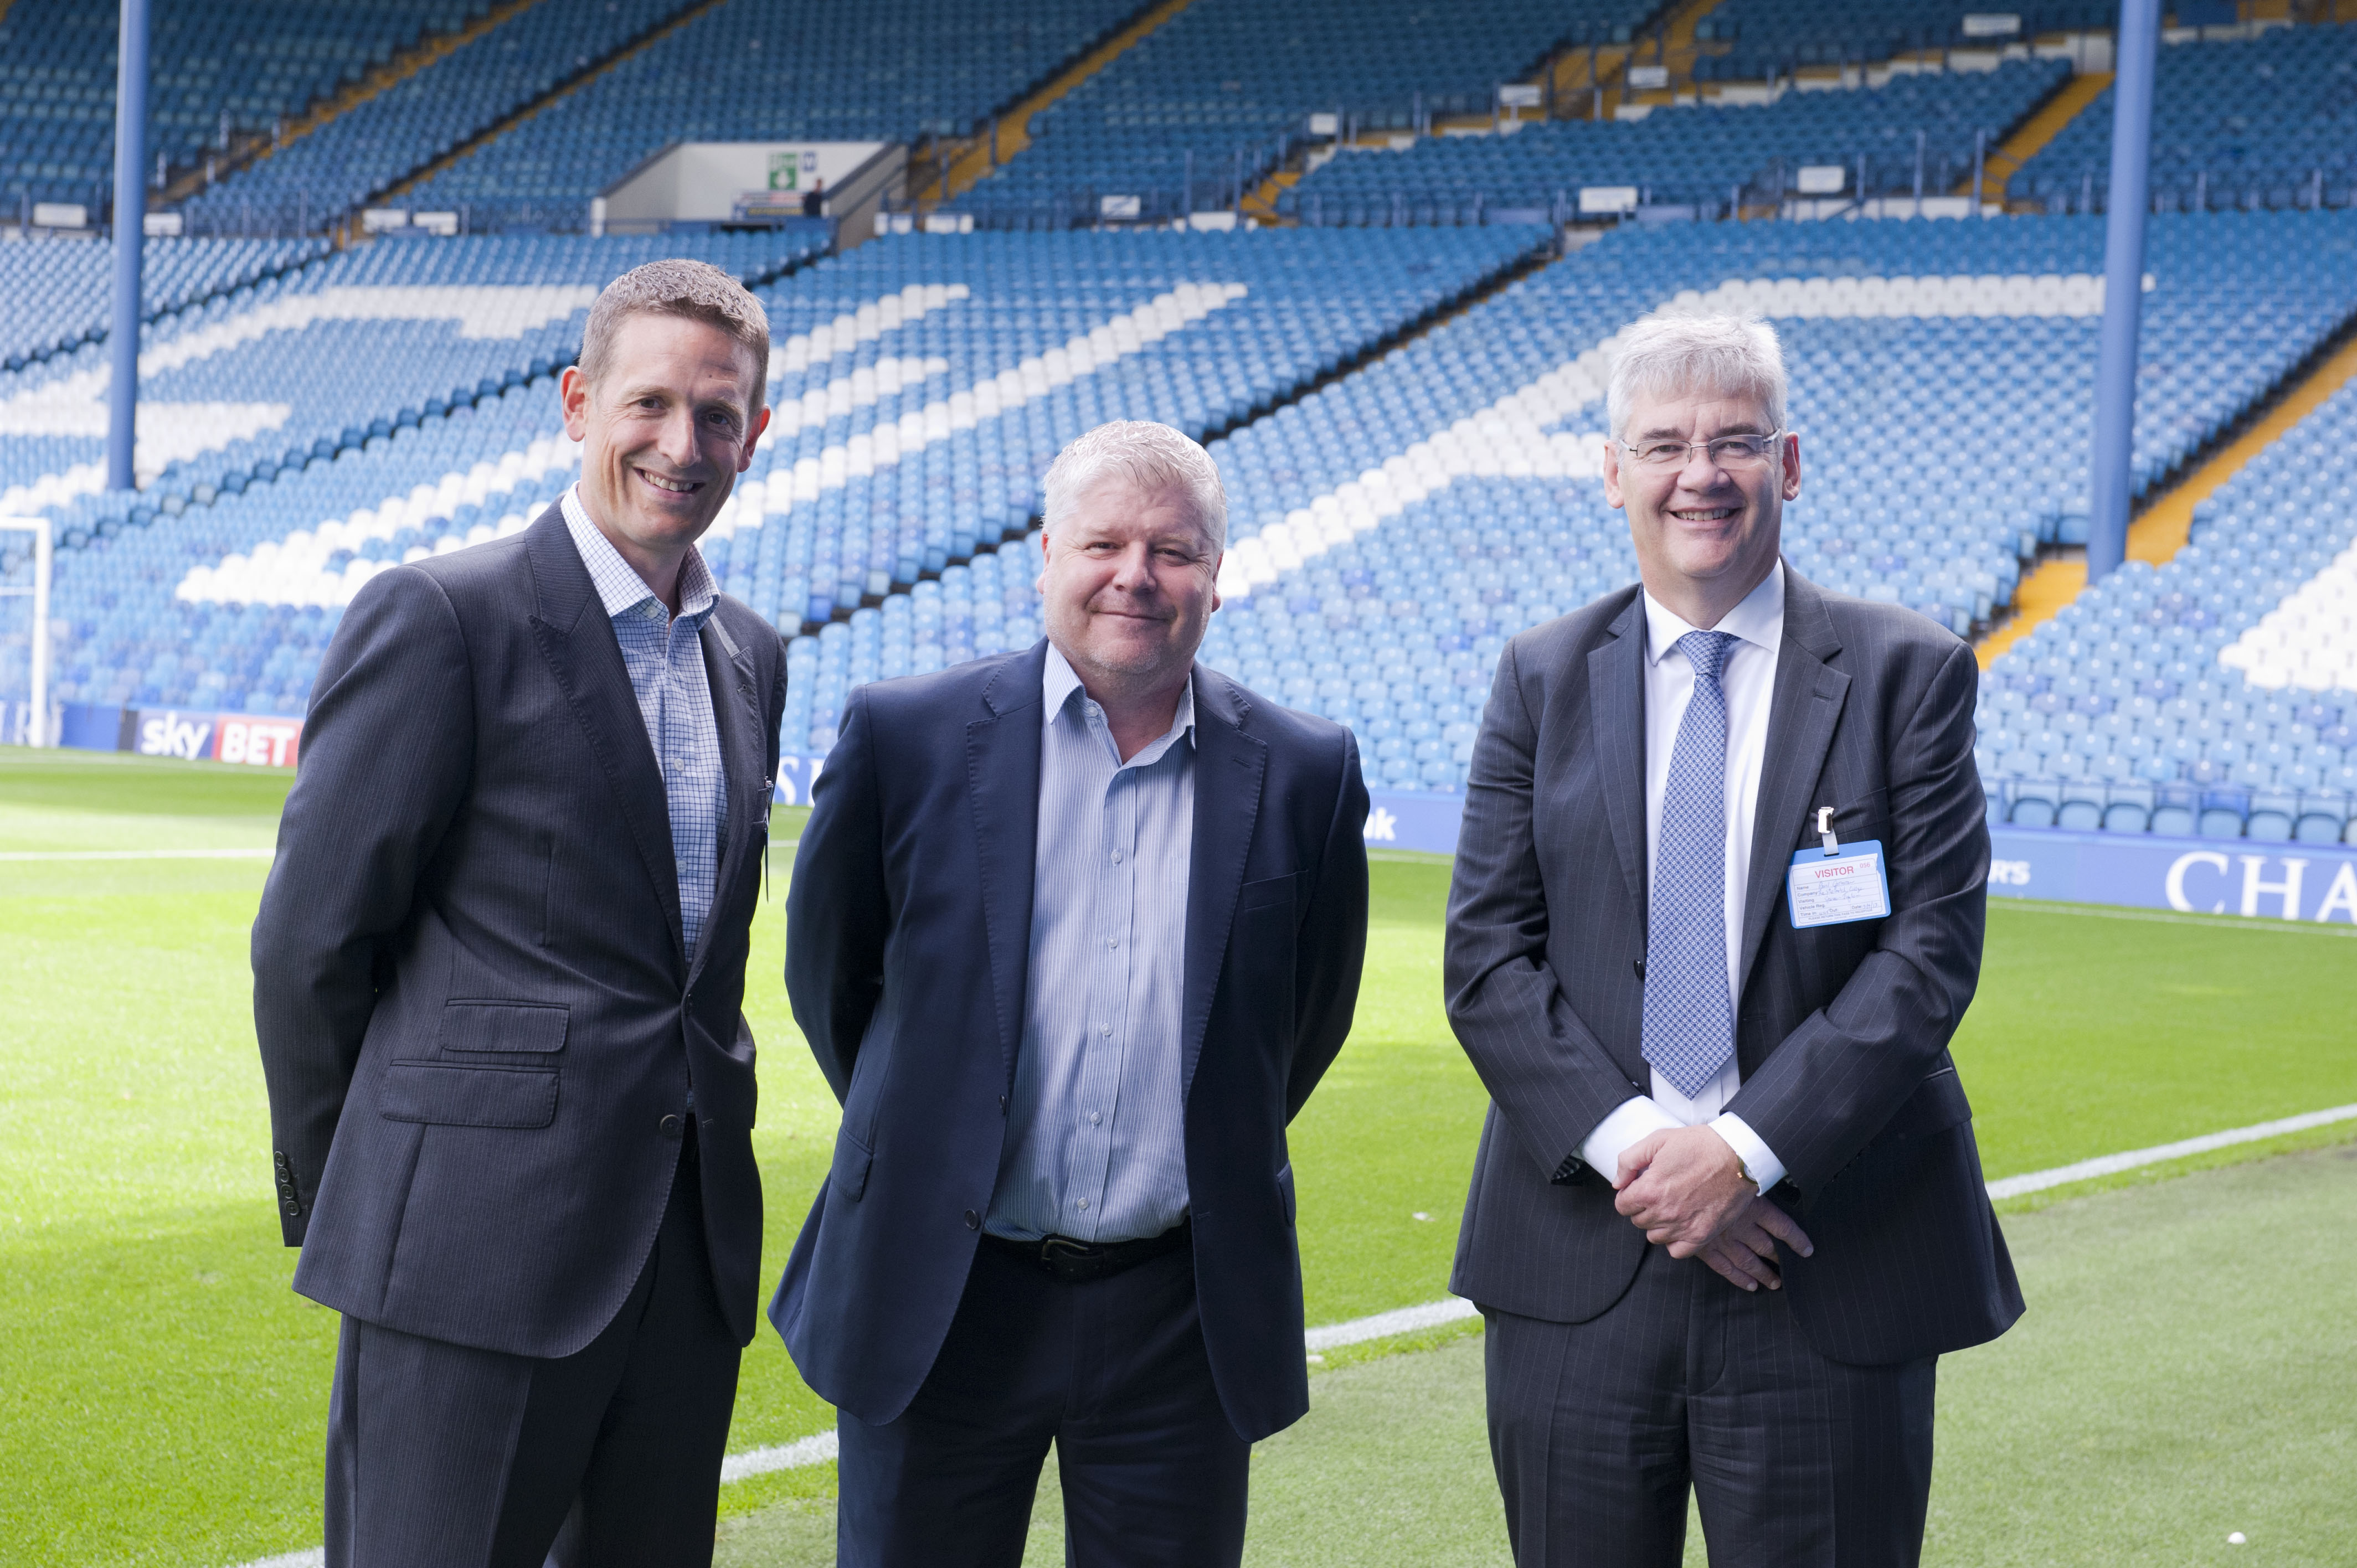 New Education Partnership Launches For City's Sporting Talent